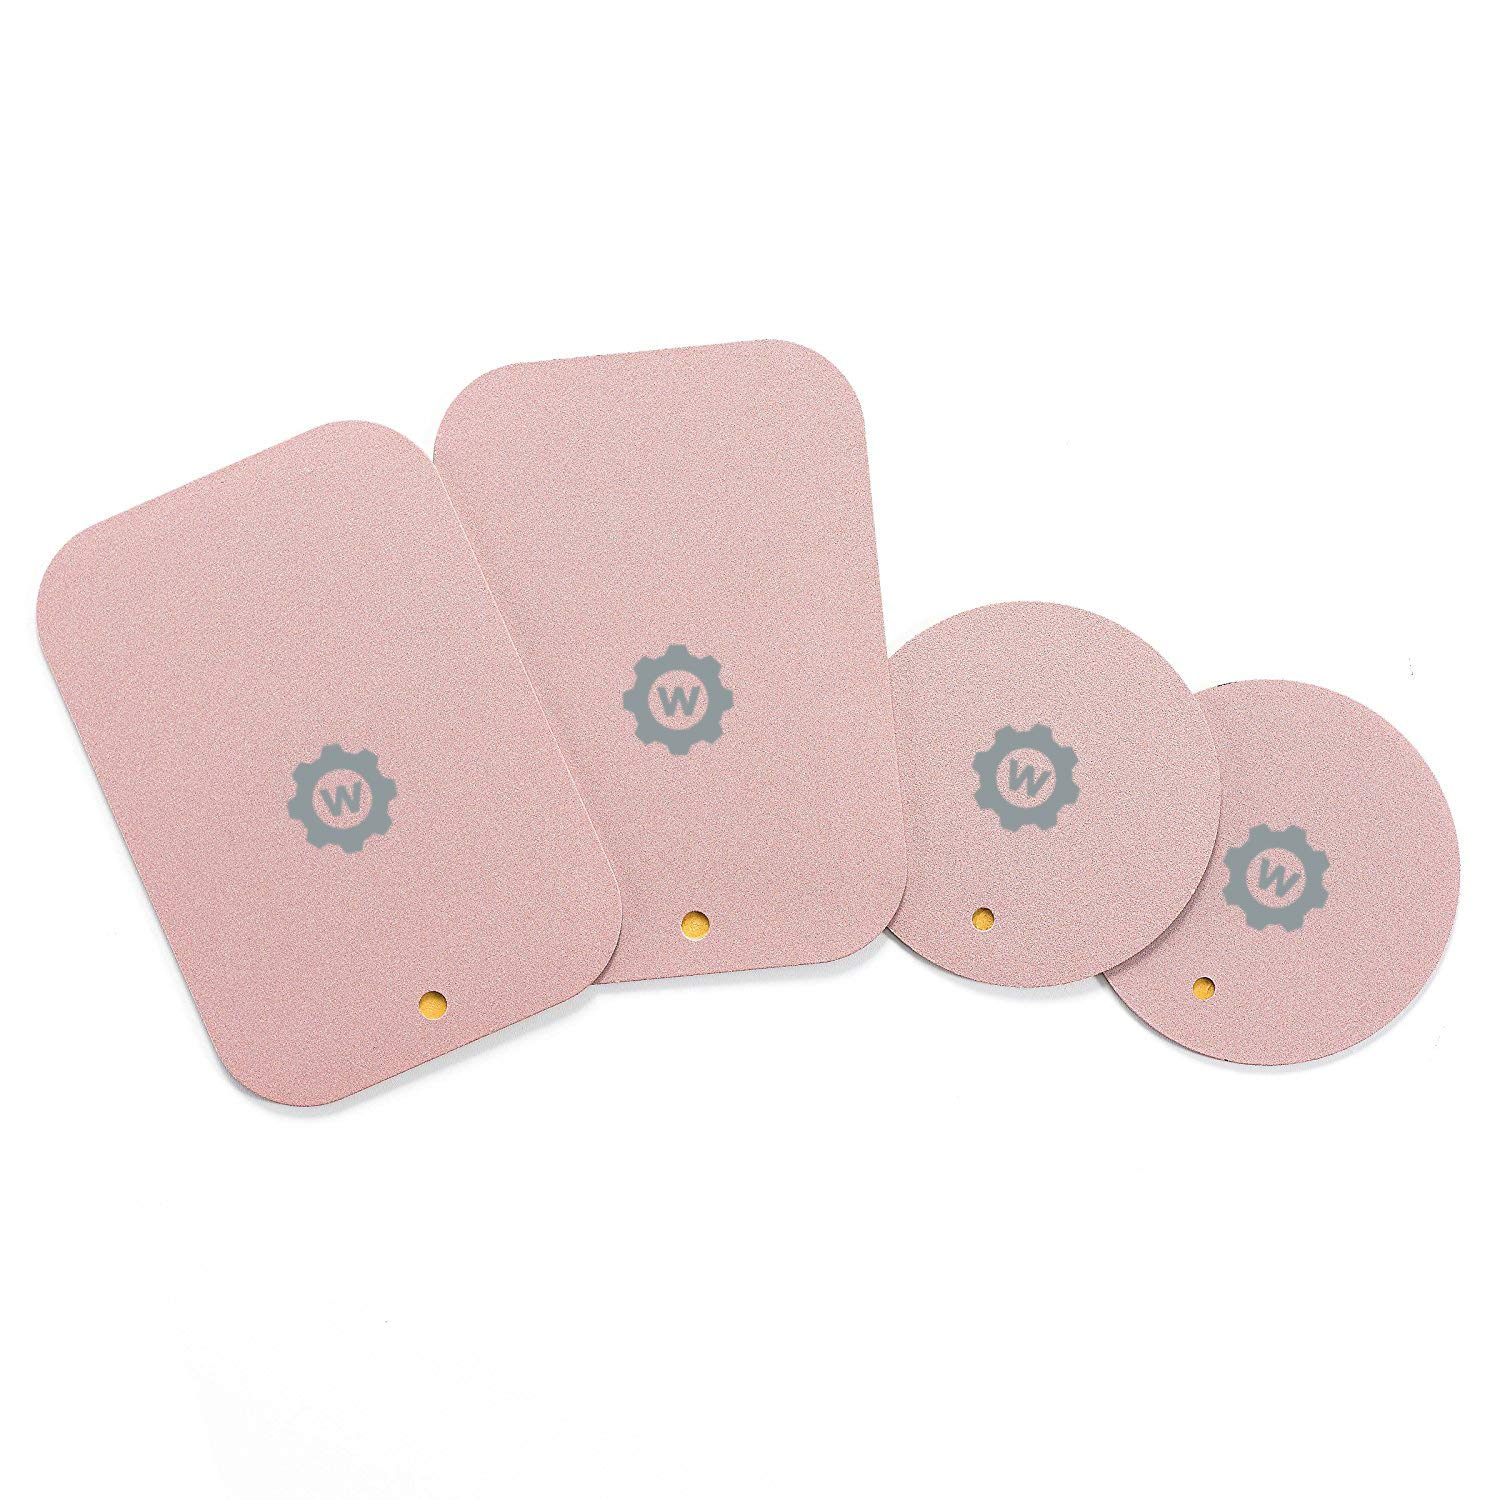 Rose Gold Mount Metal Plate with Adhesive for Magnetic Cradle-Less Mount X4 Pack 2 Rectangle and 2 Round Compatible with WizGear mounts